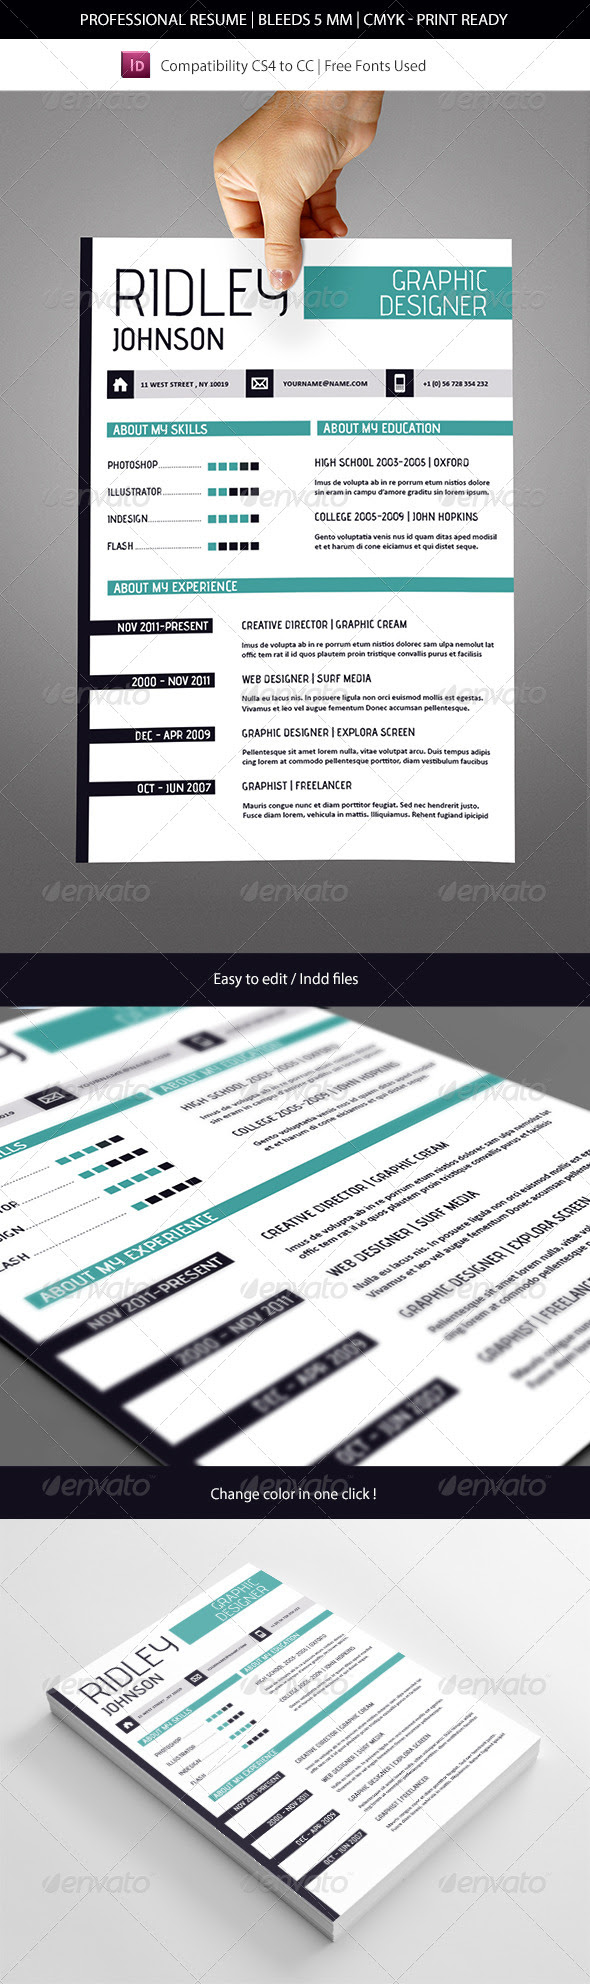 creative indesign resume template  resumes  download